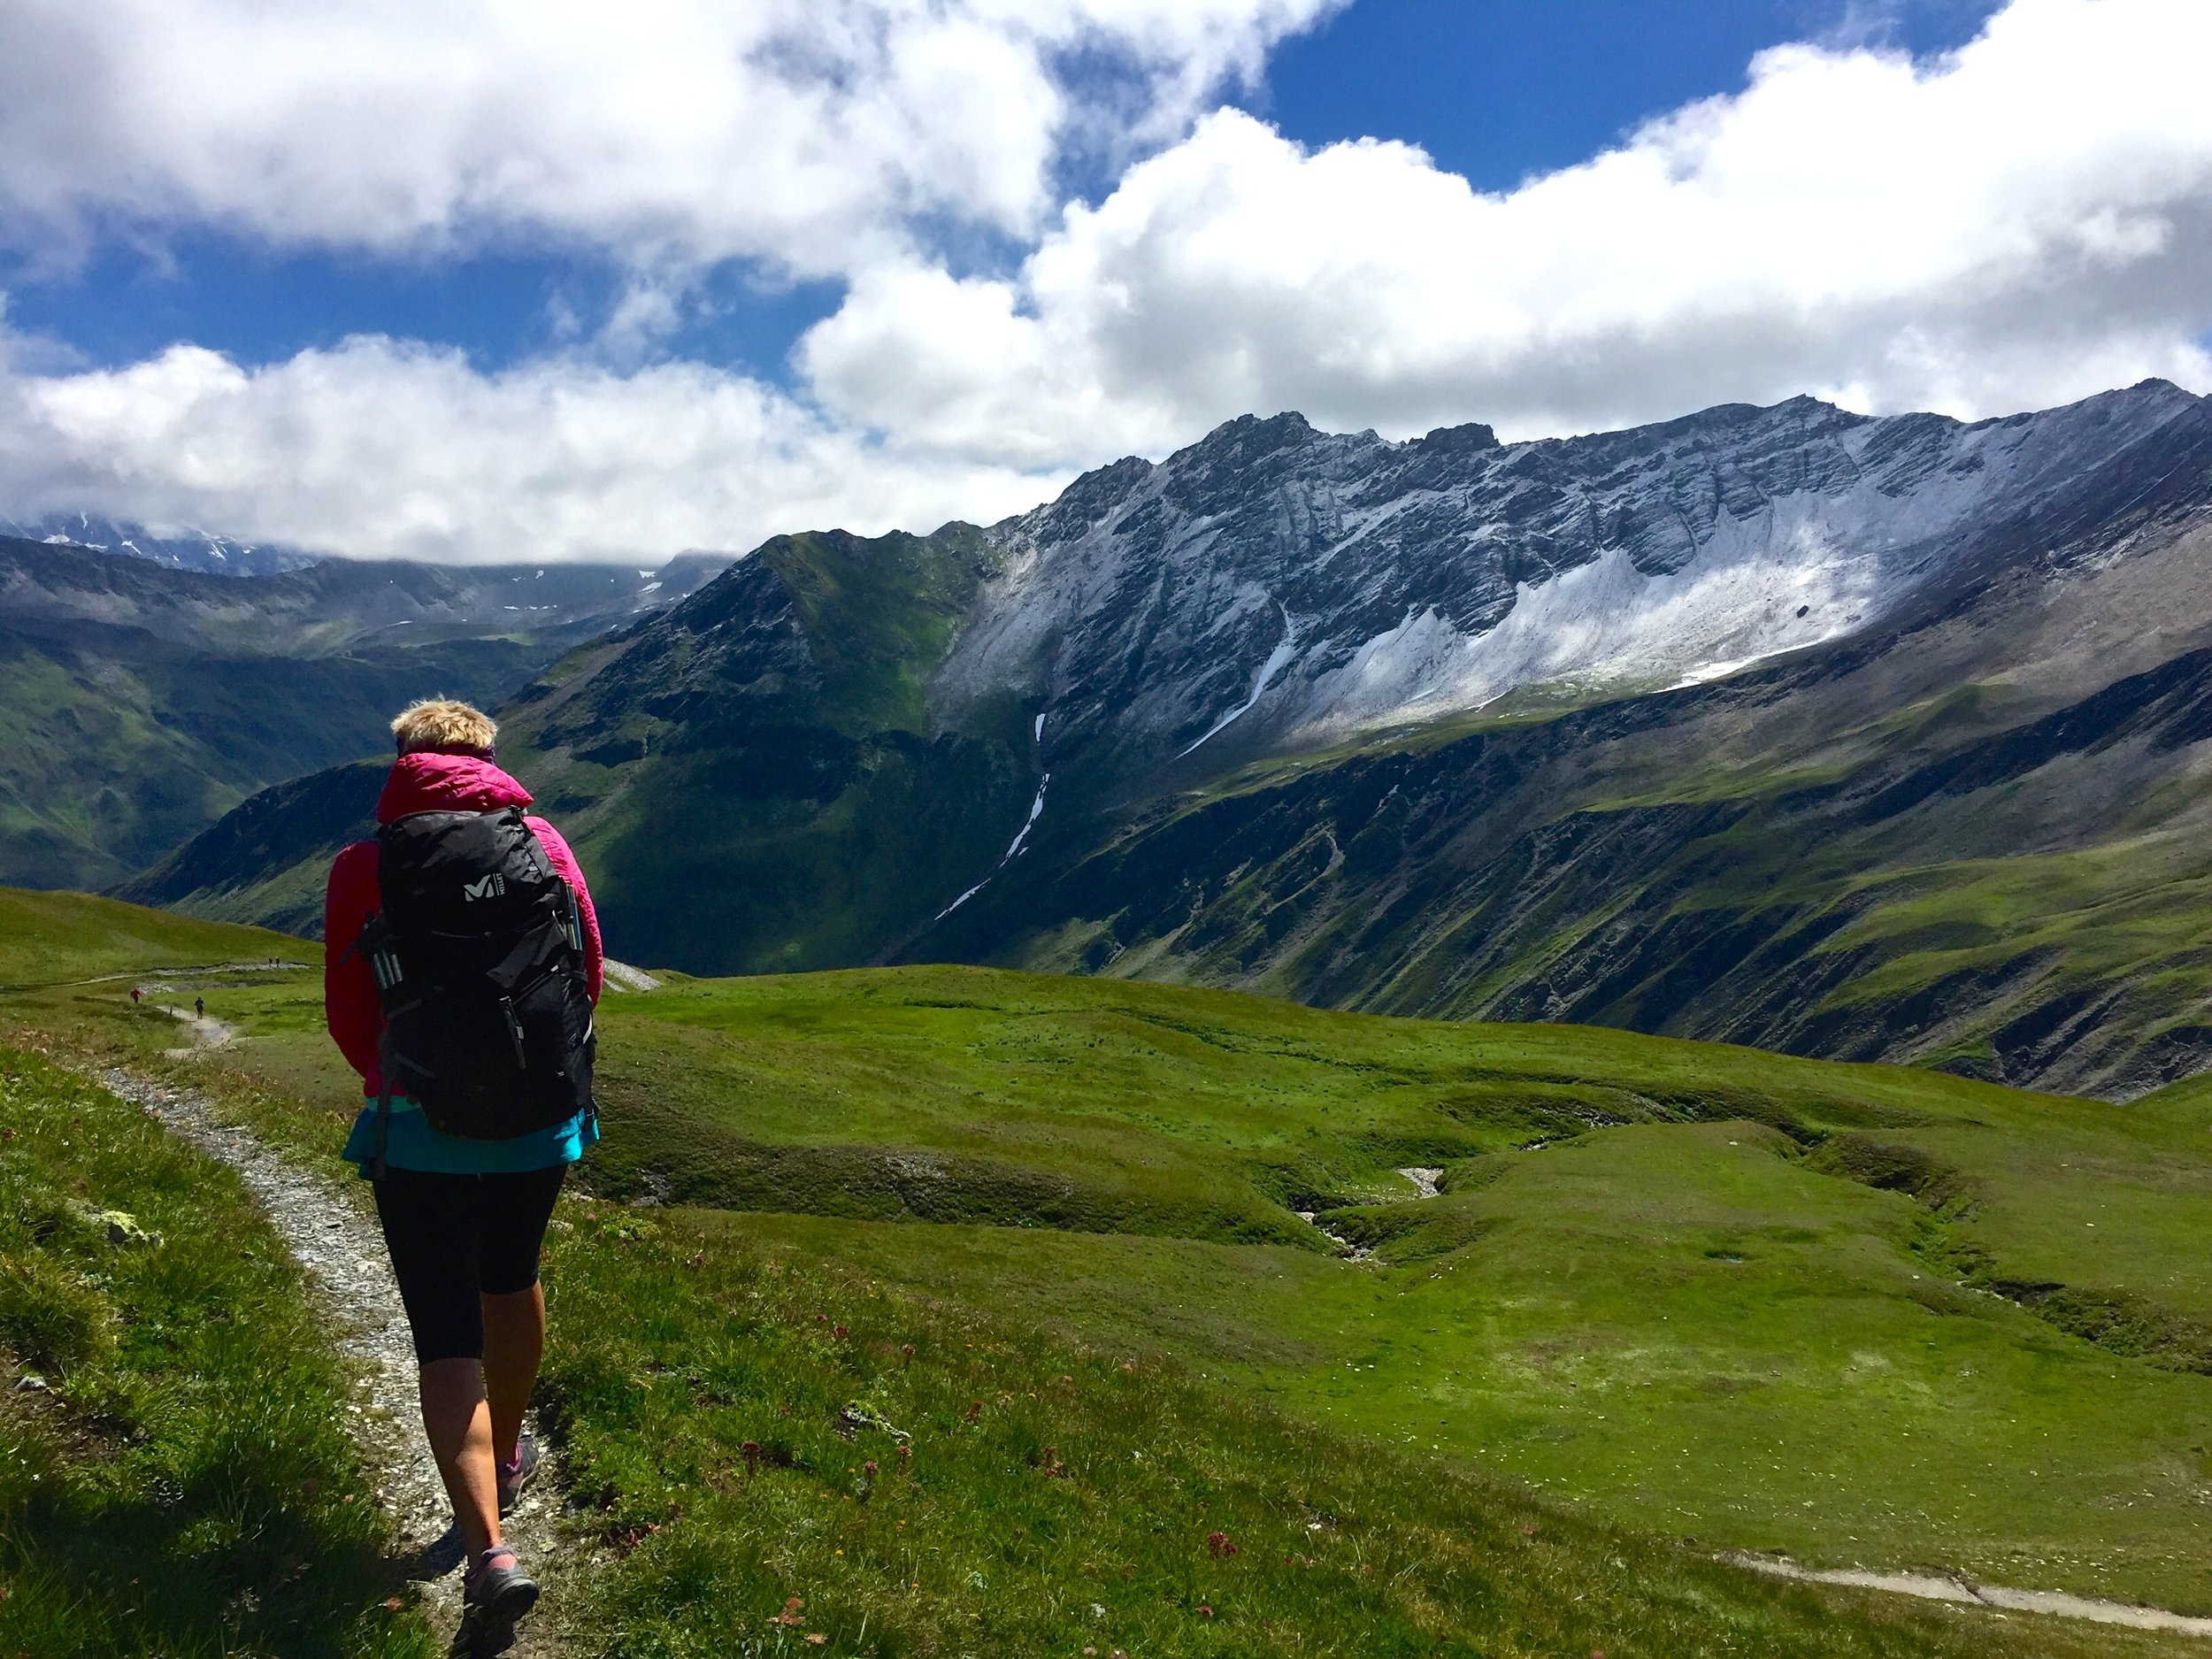 Hiking down into Switzerland, one of three countries you'll trek through on the Tour du Mont Blanc.